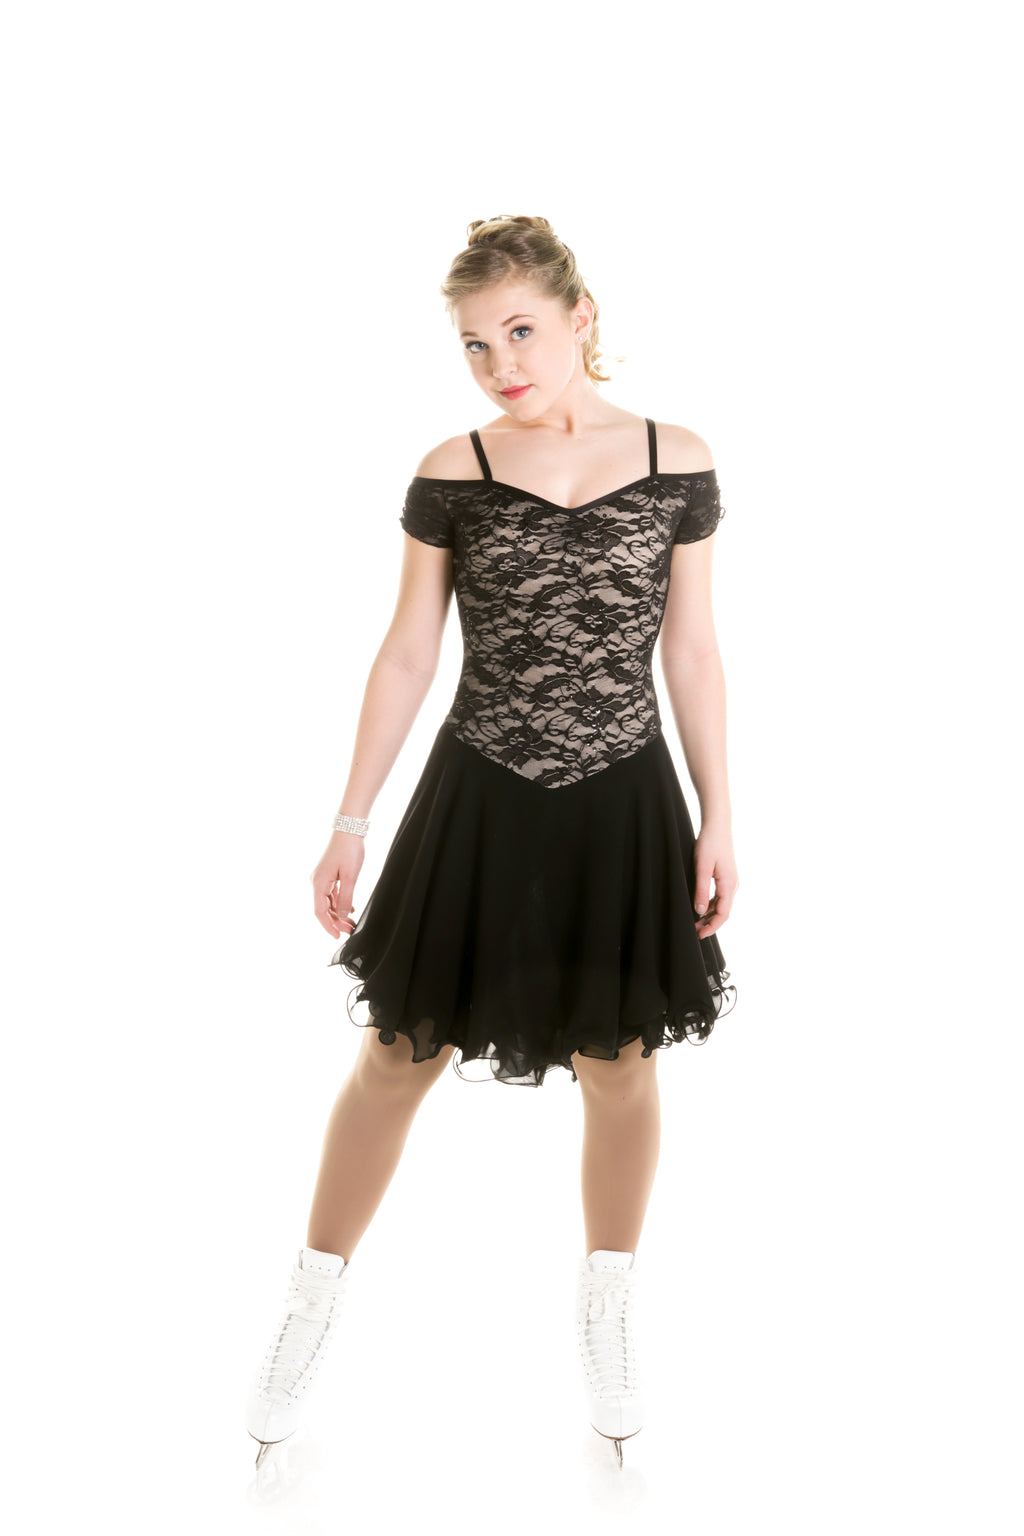 Black dance dress - House of Skates